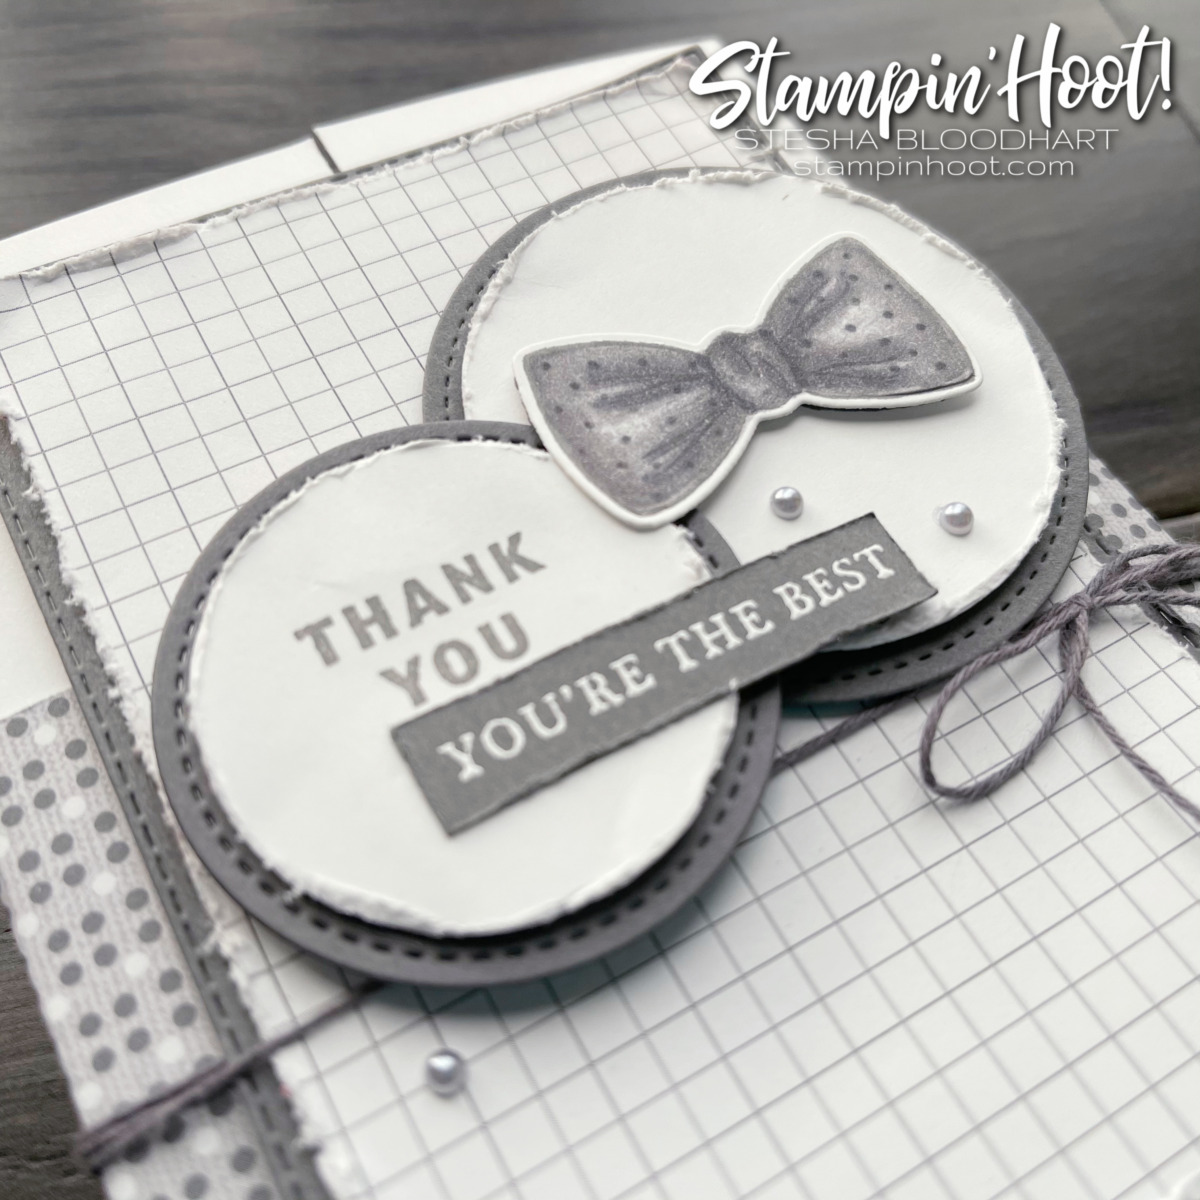 #tgifc307 Sketch Challenge using Well Suited from Stampin' Up! Card by Stesha Bloodhart, Stampin' Hoot! (2)